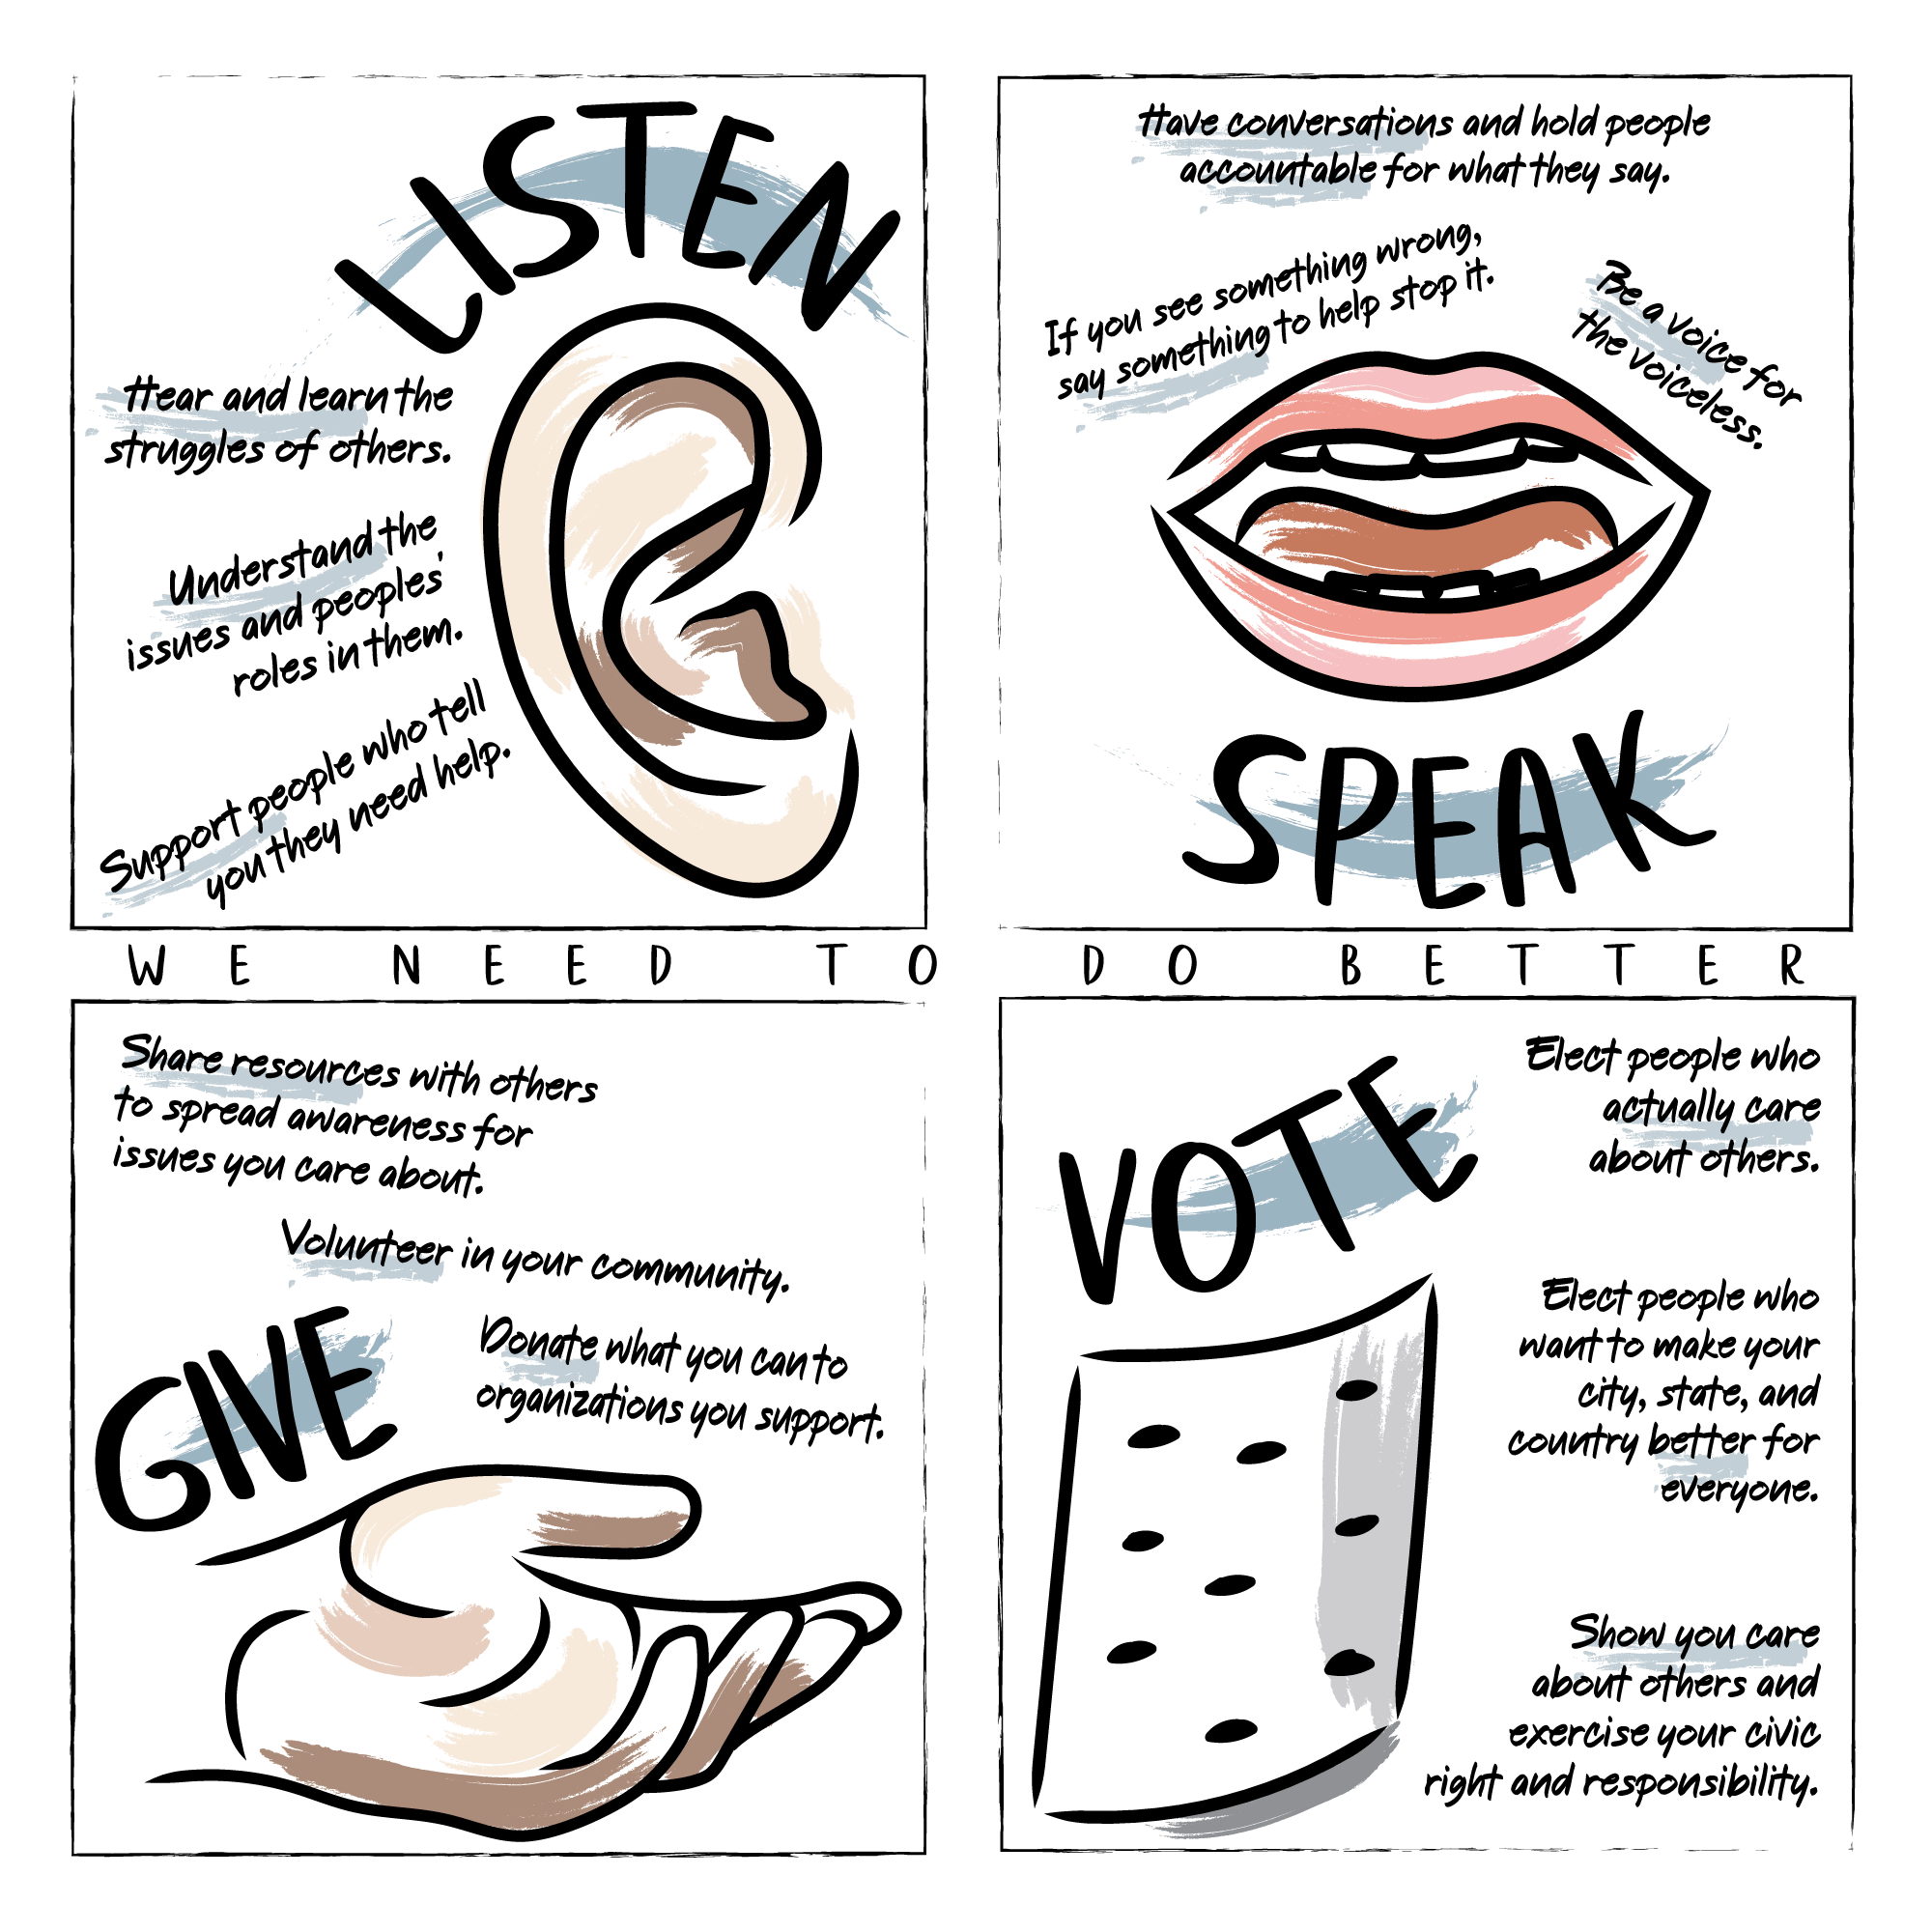 Listen, speak, give, vote.